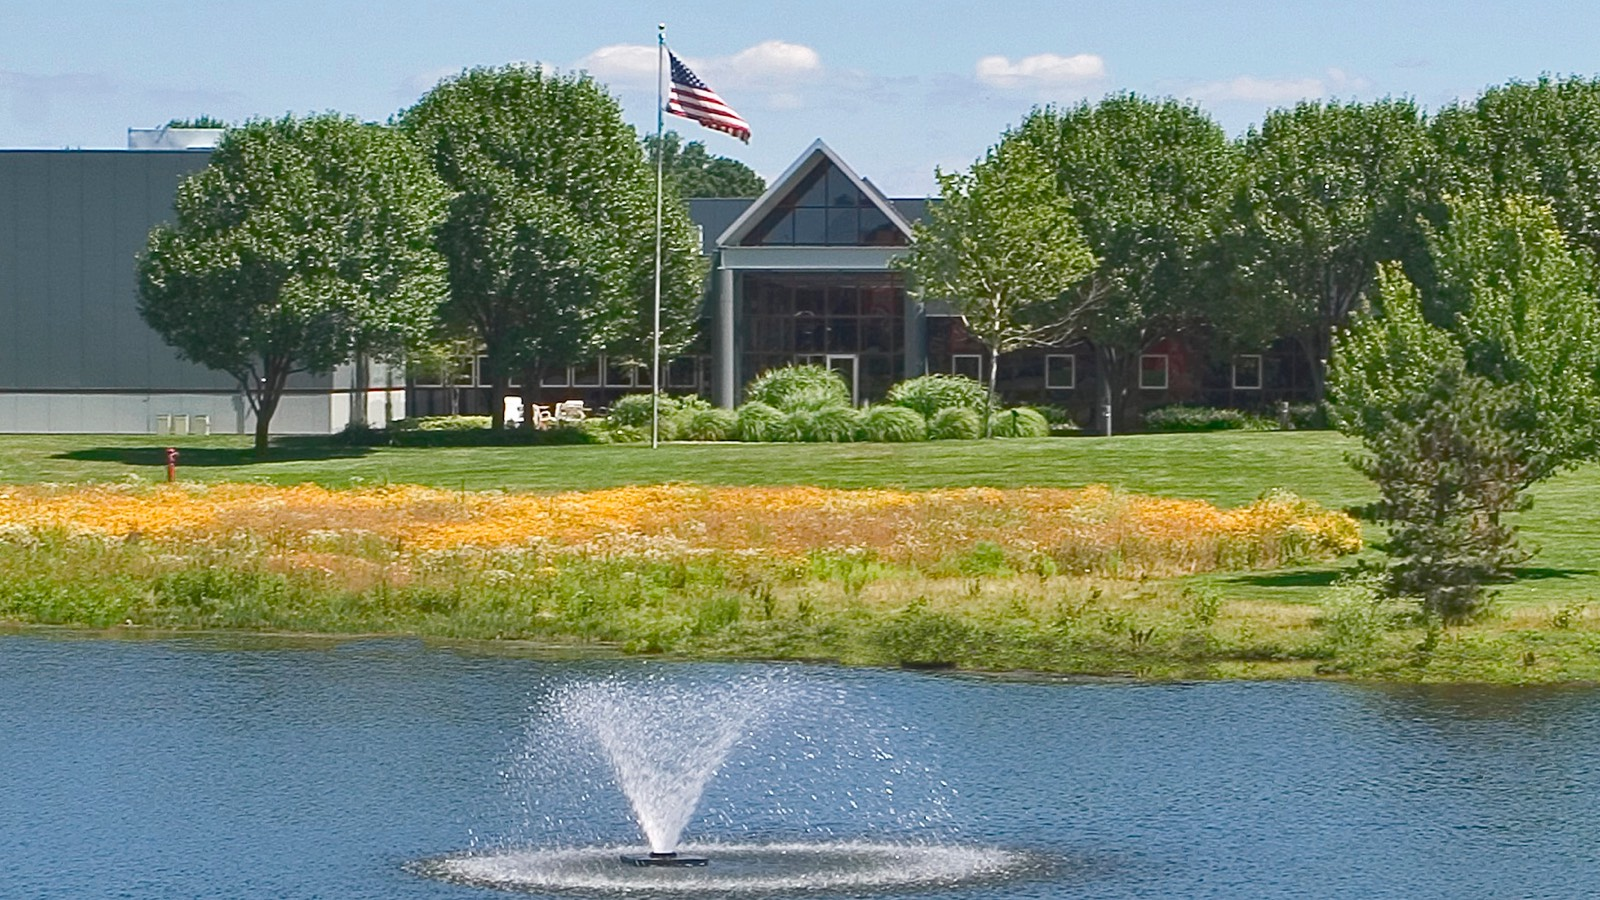 An outdoor photograph during a sunny day of a Herman Miller facility surrounded by lush landscaping, with a pond and fountain nearby.